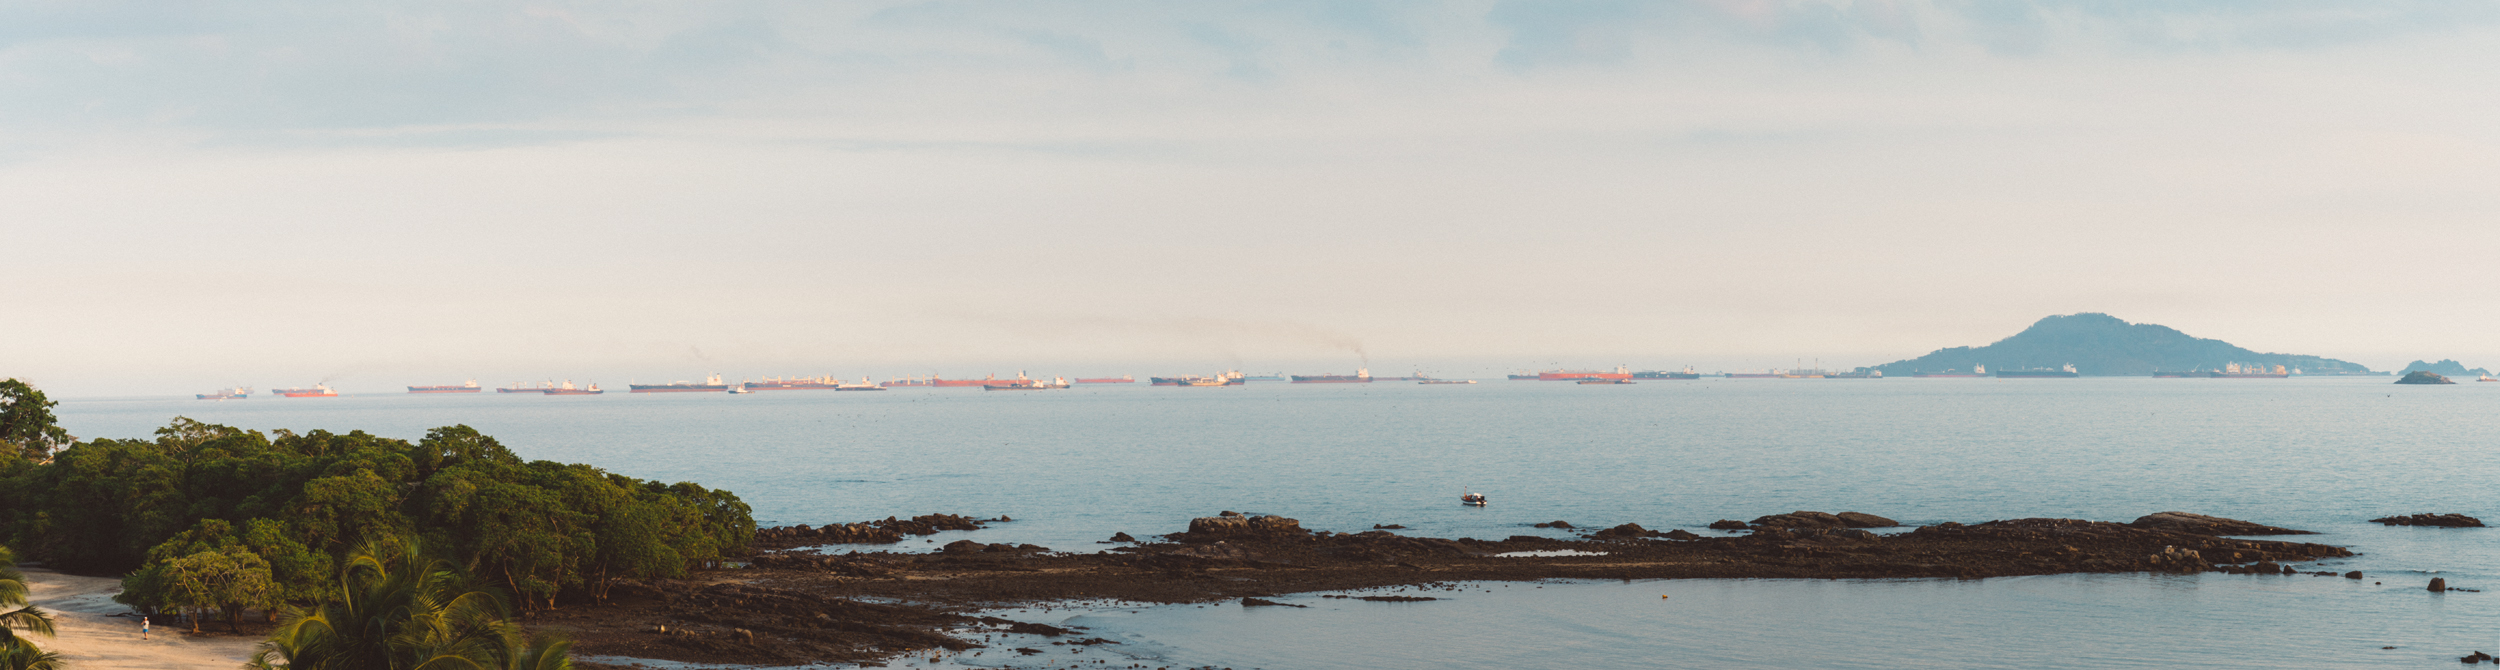 All the ships waiting to get through the Canal.